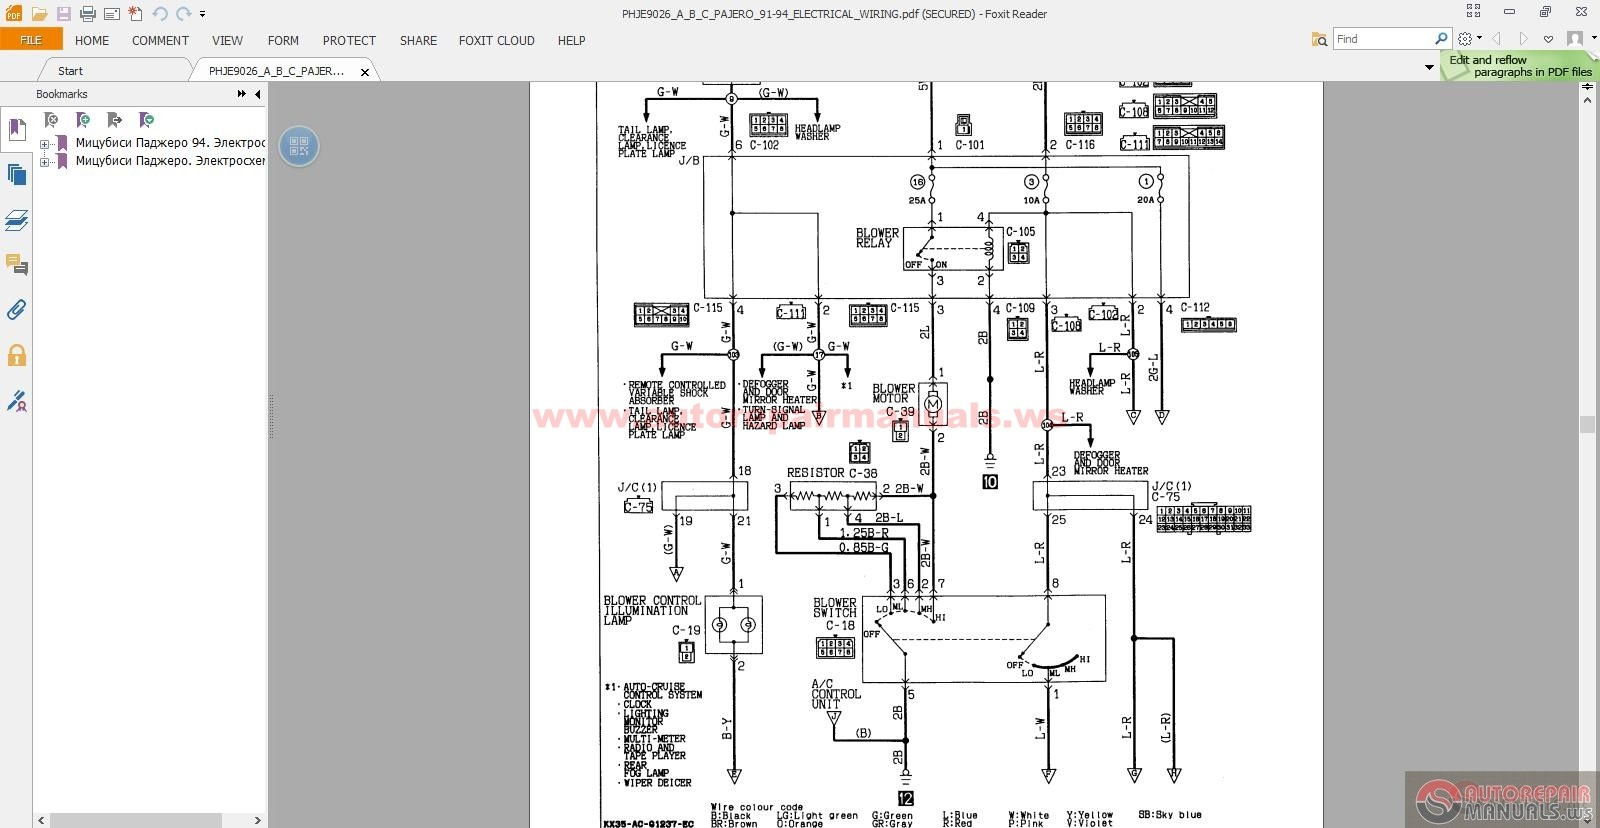 Chassis Electrical Wiring Diagrams Opinions About Diagram Complete For 1939 Chevrolet Passenger Car Mitsubishi And Manual Auto Repair Forum Heavy Equipment 95 Chevy Suburban Radio Harley Davidson Schematics